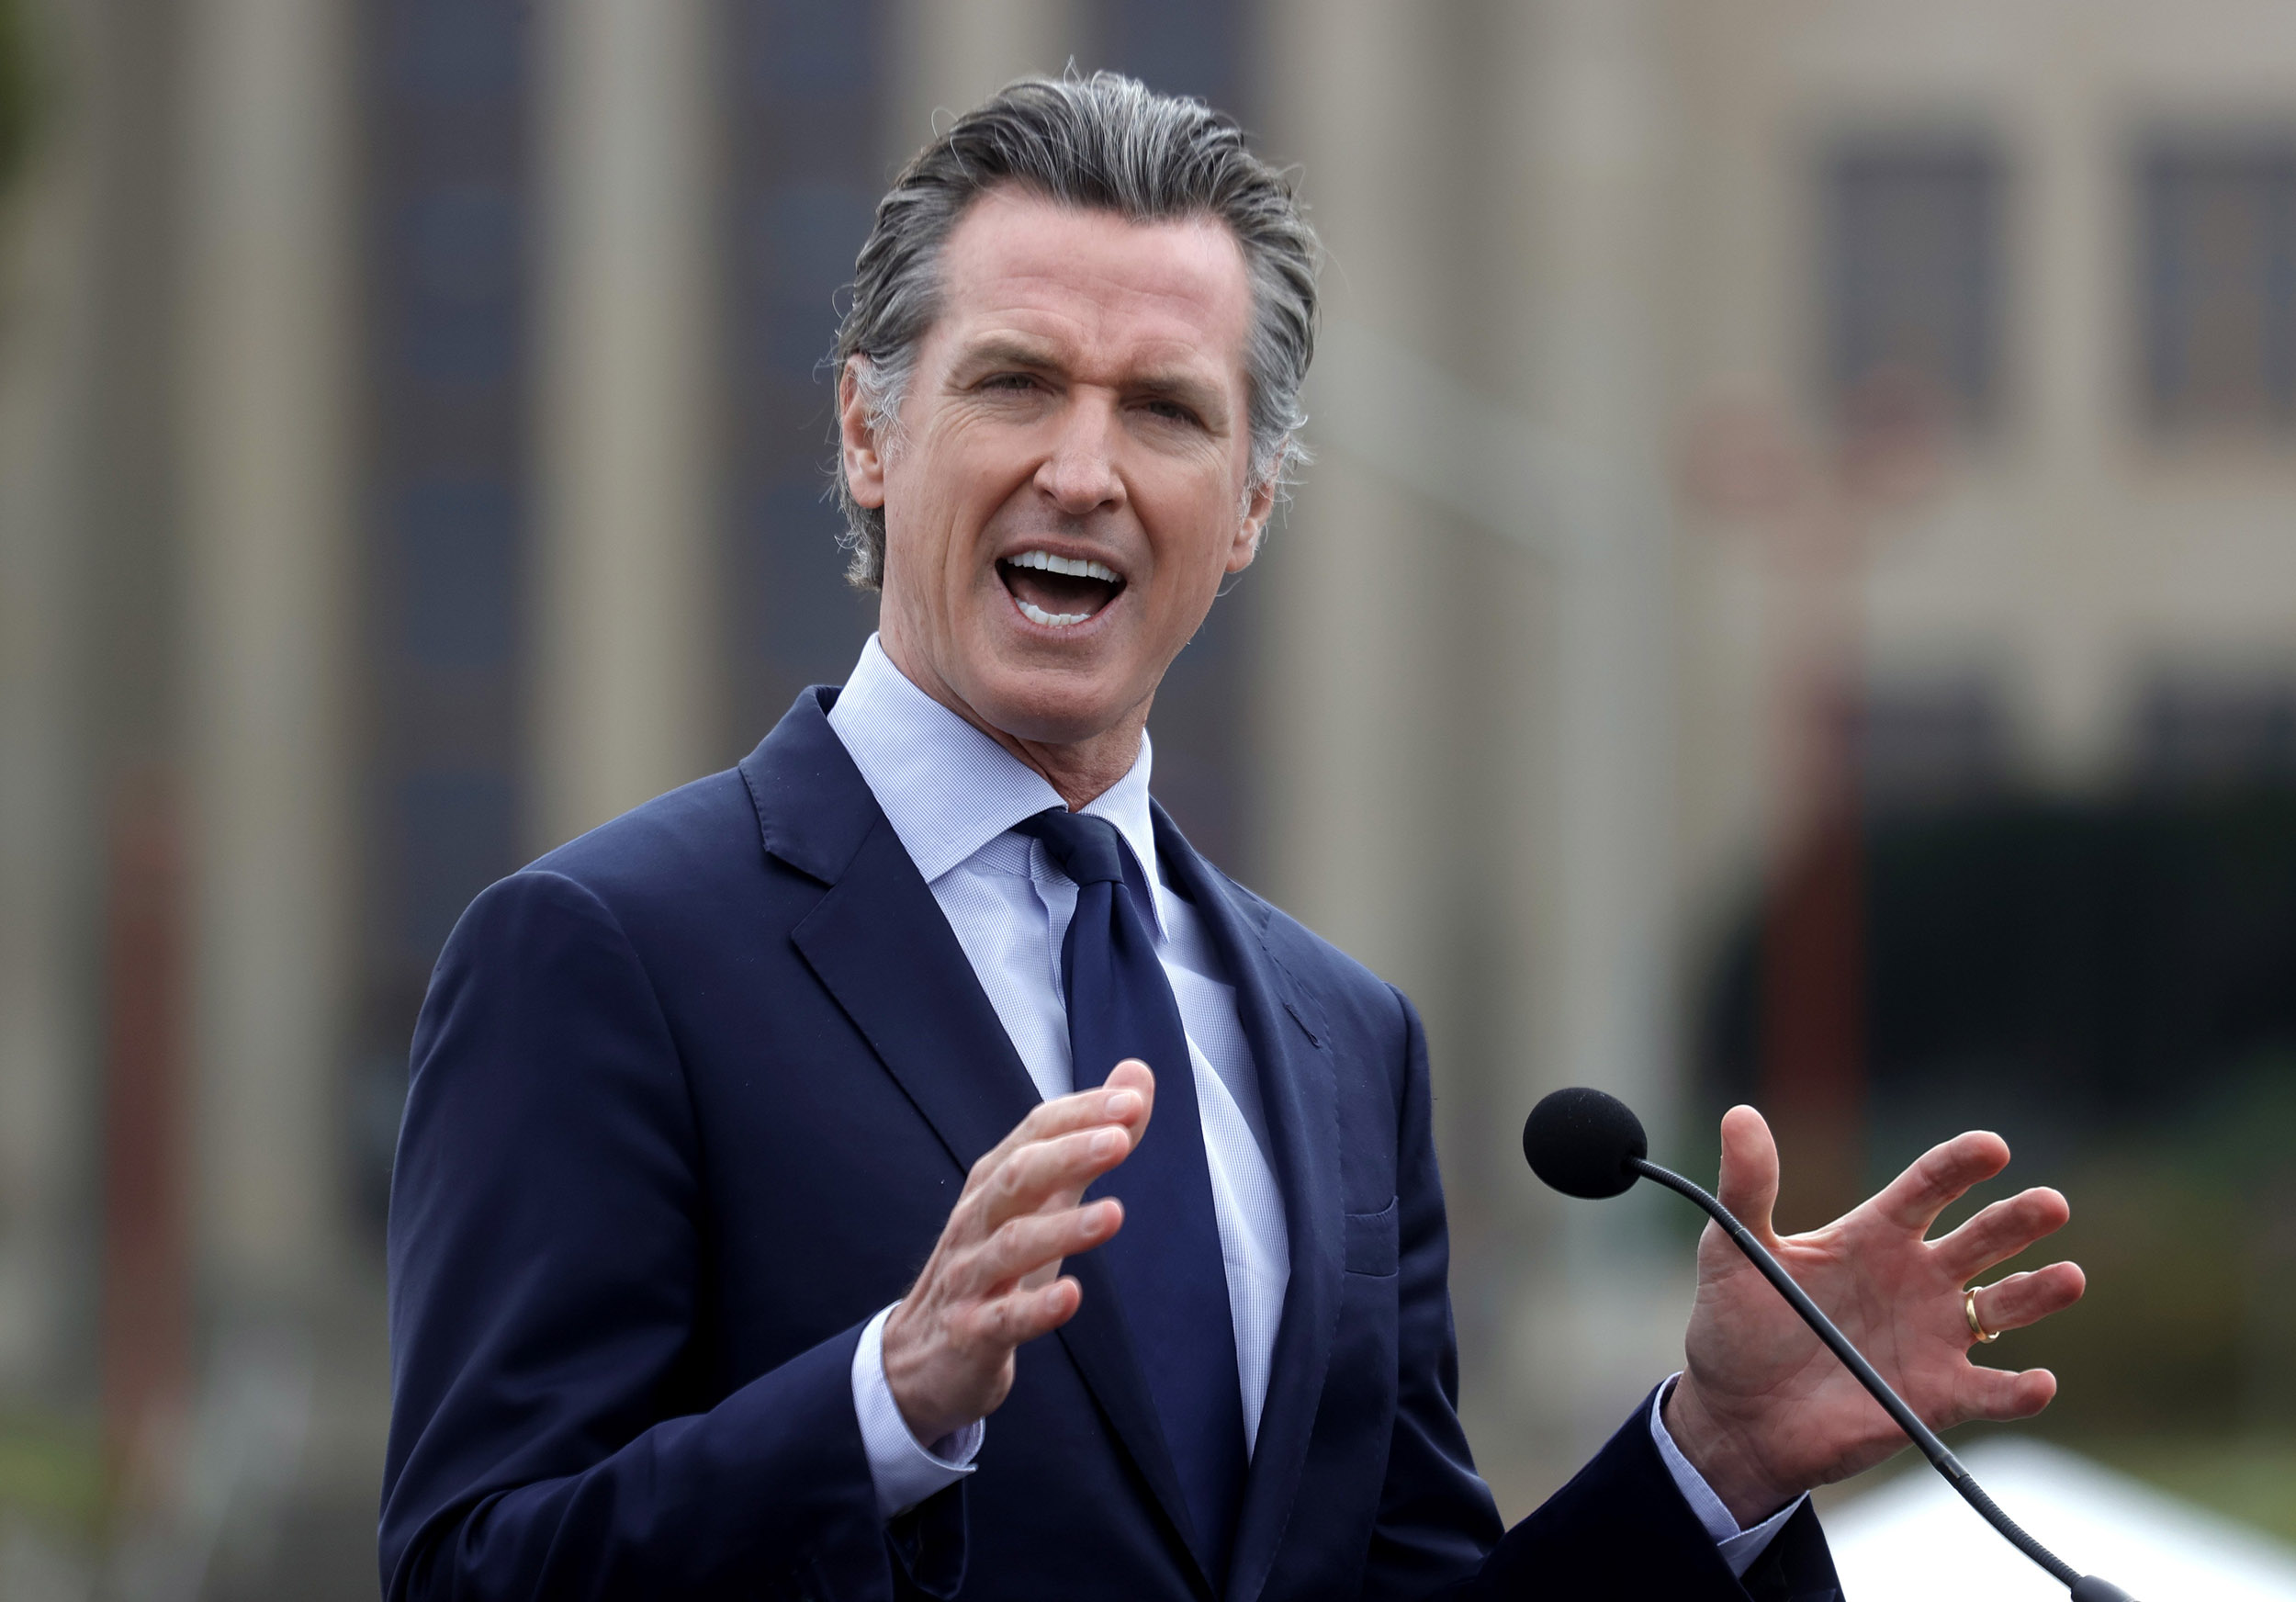 Gavin Newsom is Speaking Out on Recall Effort Against Him